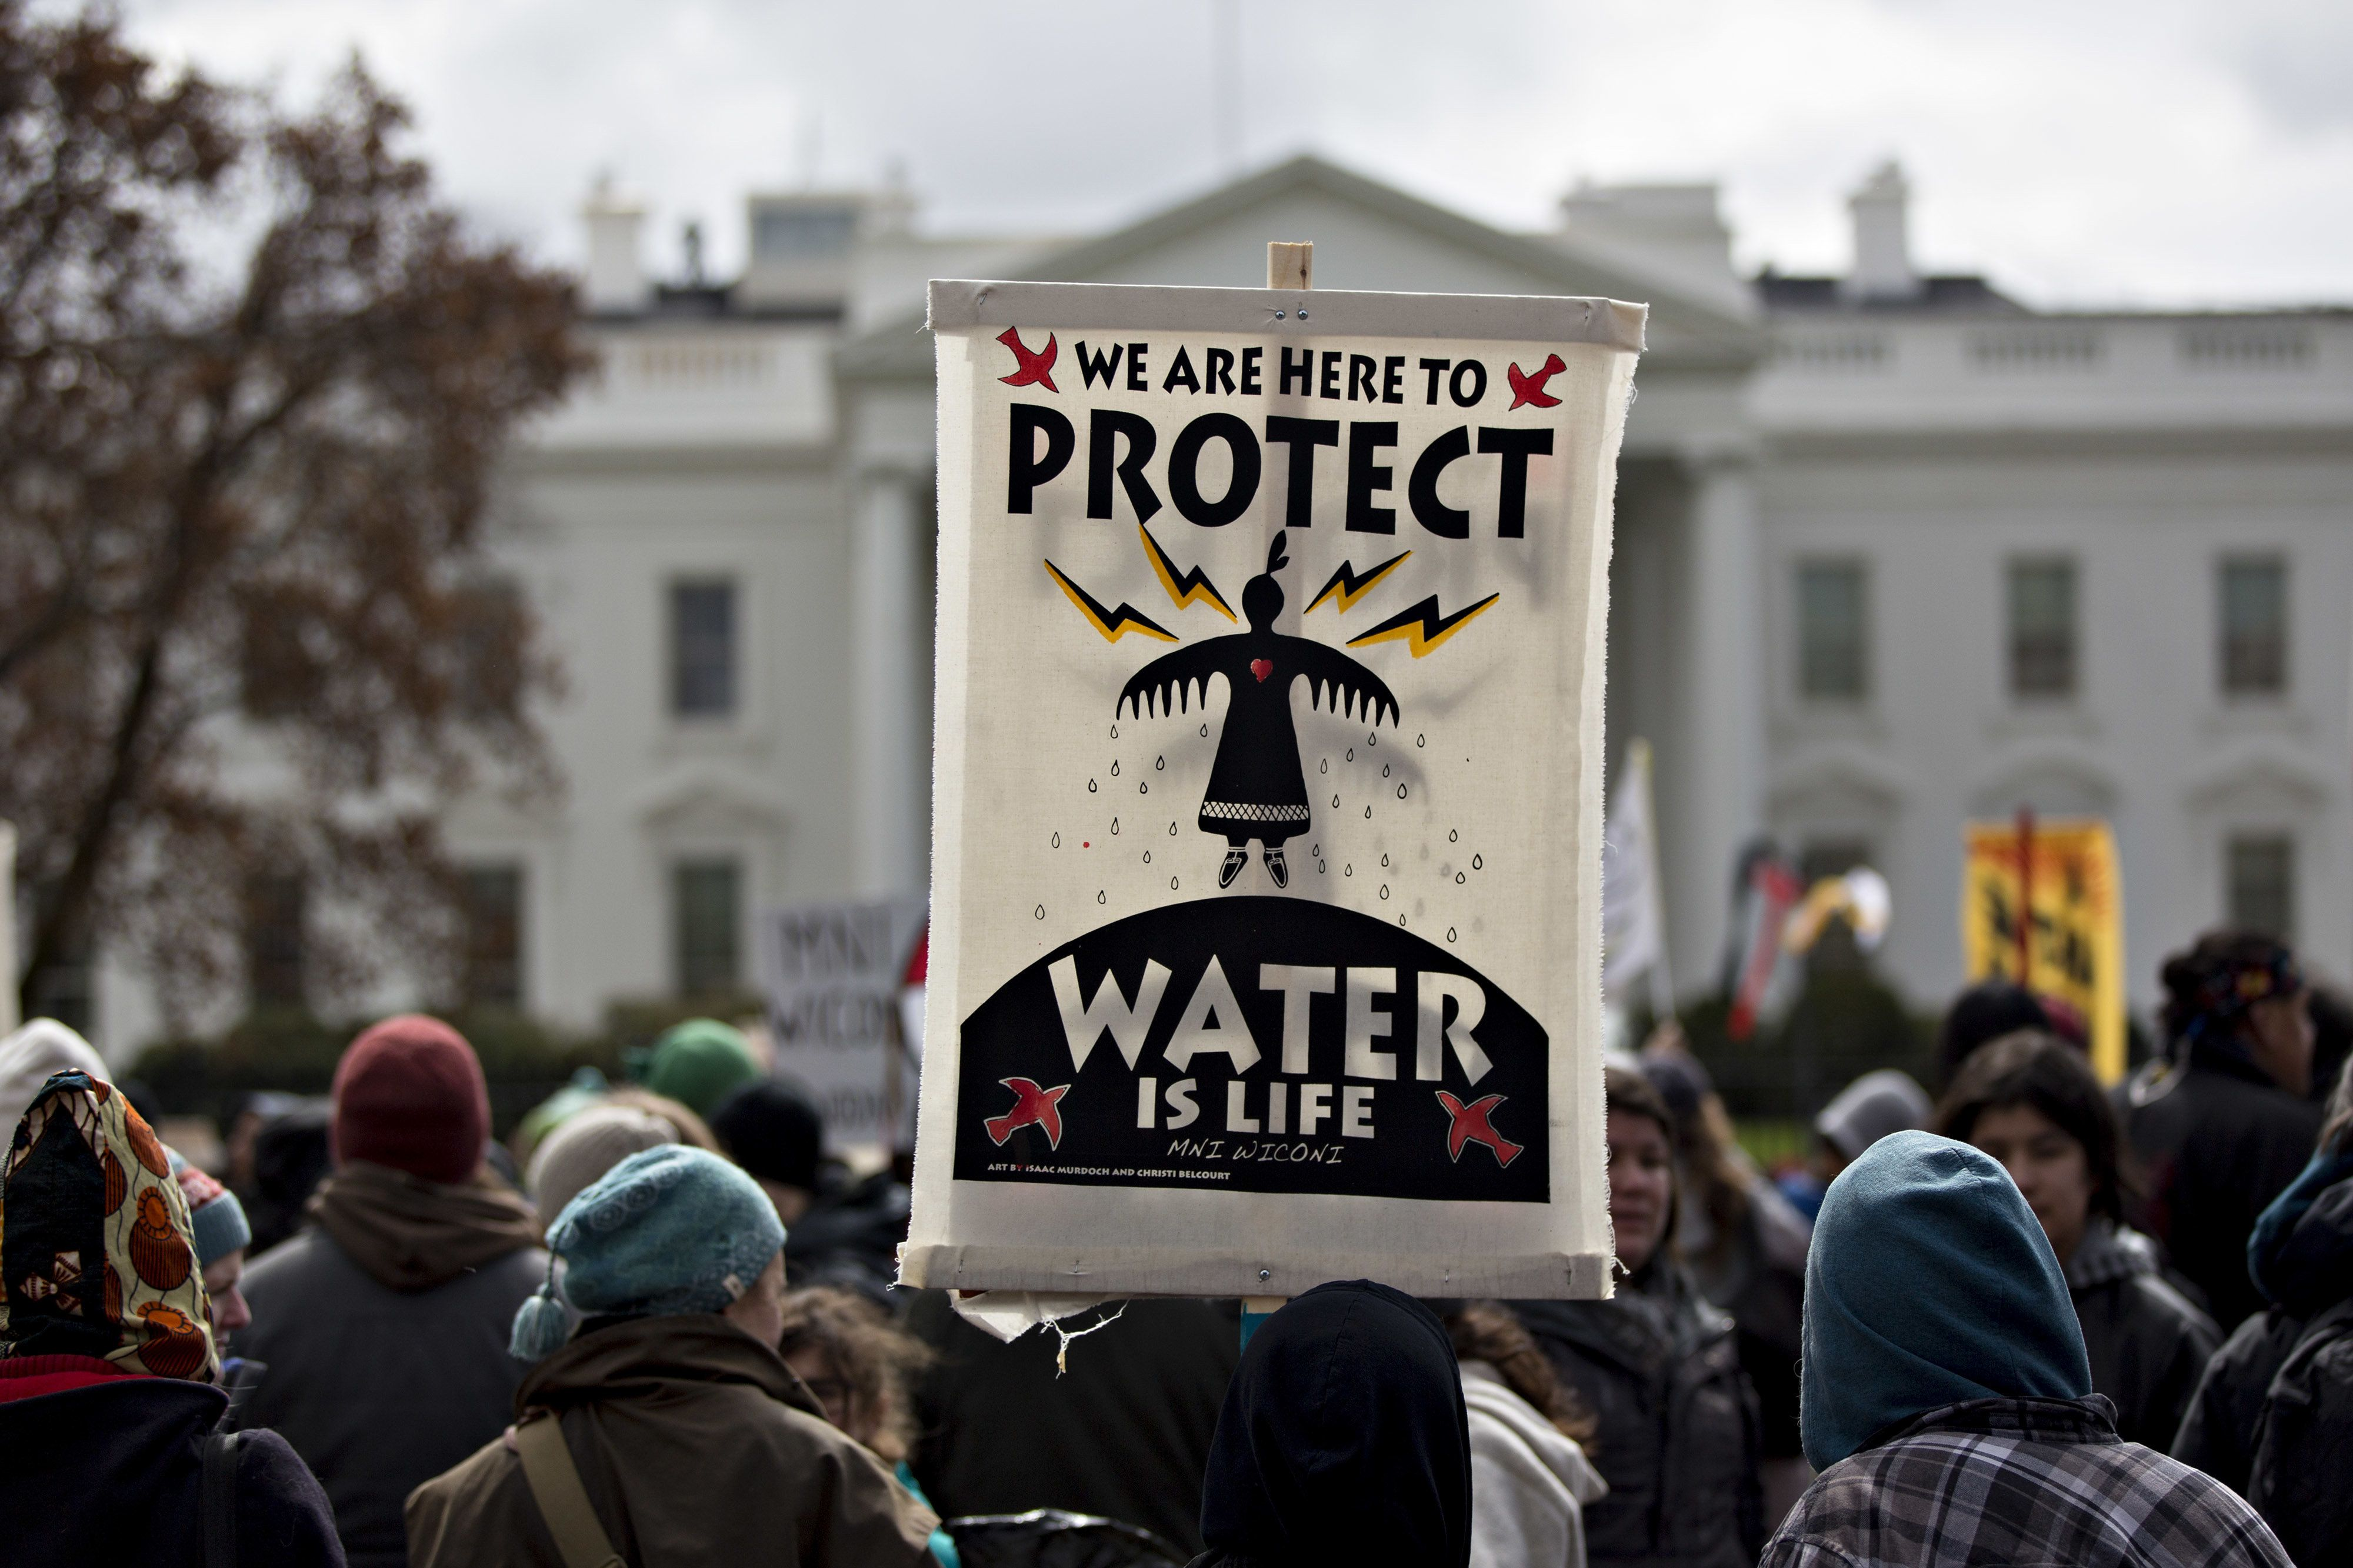 A demonstrator holds a 'Water Is Life' sign in front of the White House during a protest against the Dakota Access Pipeline (DAPL) in Washington, D.C., U.S., on Friday, March 10, 2017. The Standing Rock Sioux Tribe and Indigenous grassroots leaders arranged for the march to protect native sovereignty, keep fossil fuels in the ground and stop construction of the DAPL project. Photographer: Andrew Harrer/Bloomberg via Getty Images